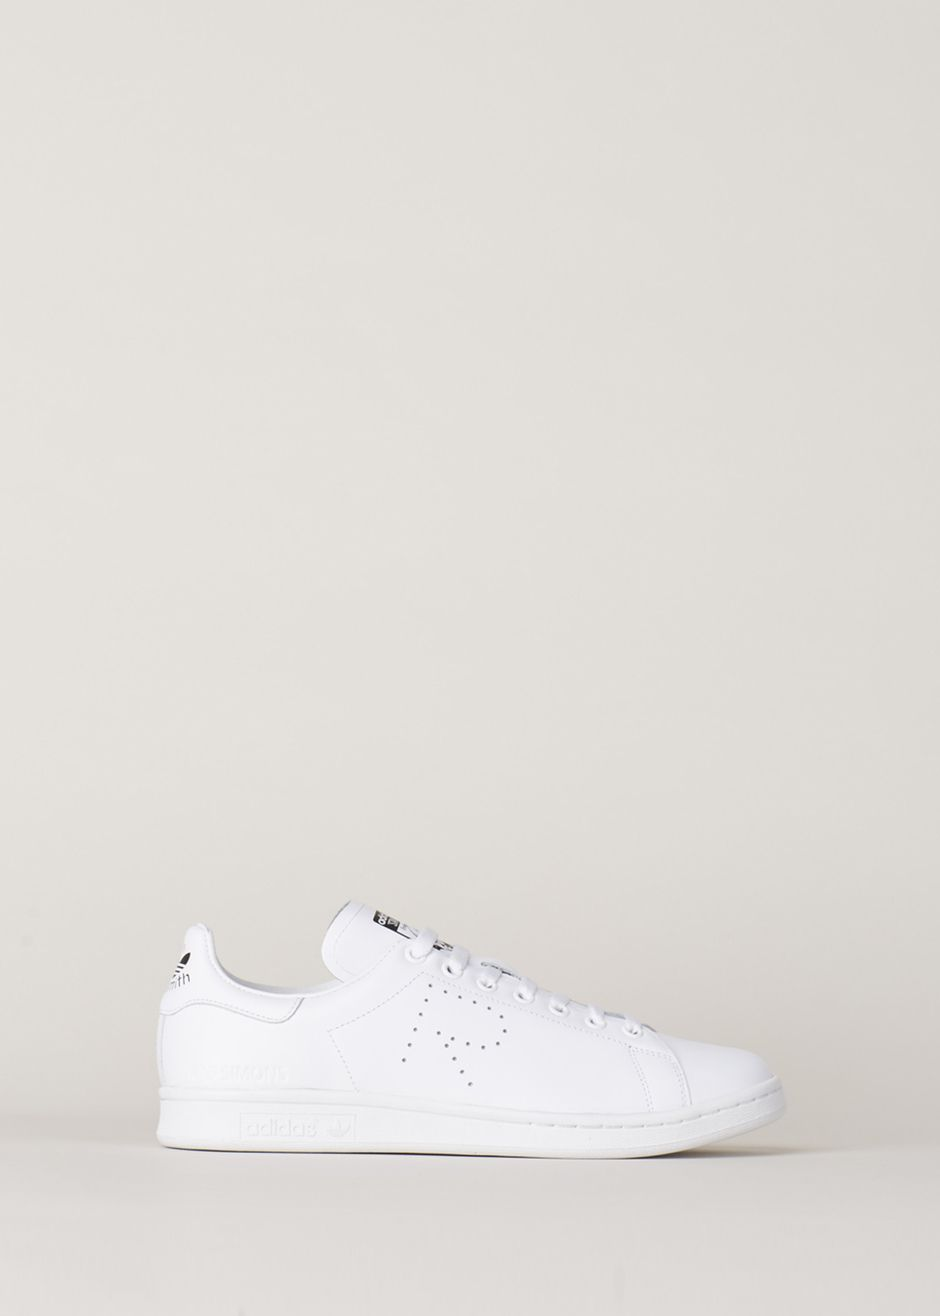 Raf Simons x Adidas Stan Smith.  Although RS is one of my fav designers, here I don't know why this is necessary.